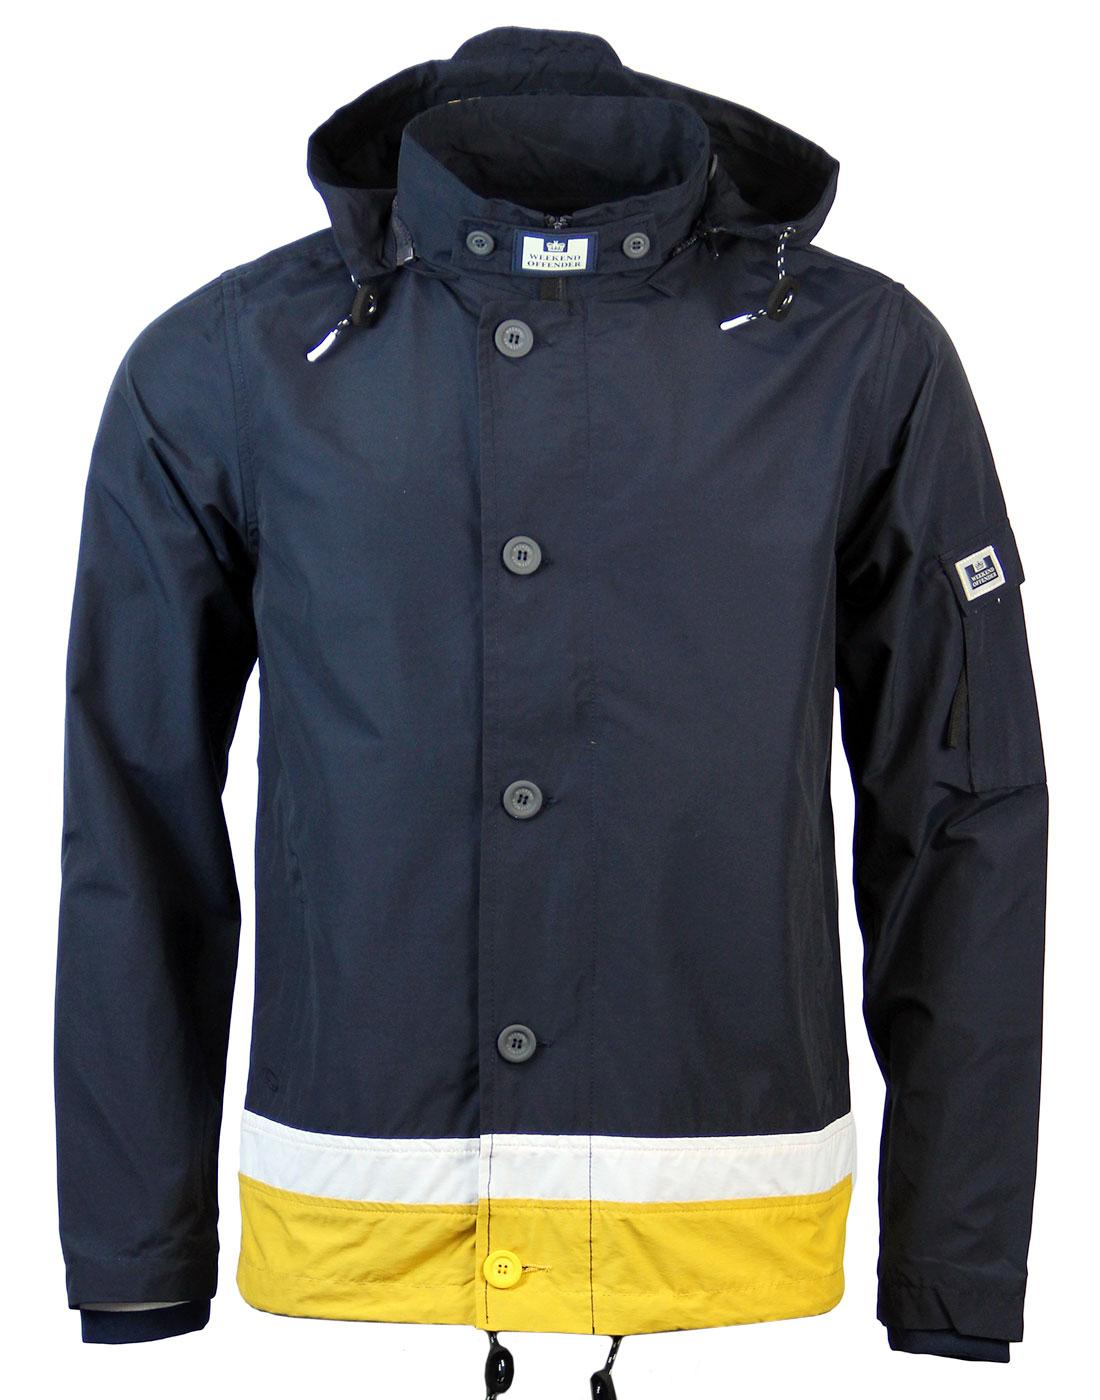 Hemlock WEEKEND OFFENDER Retro 90s Terrace Jacket